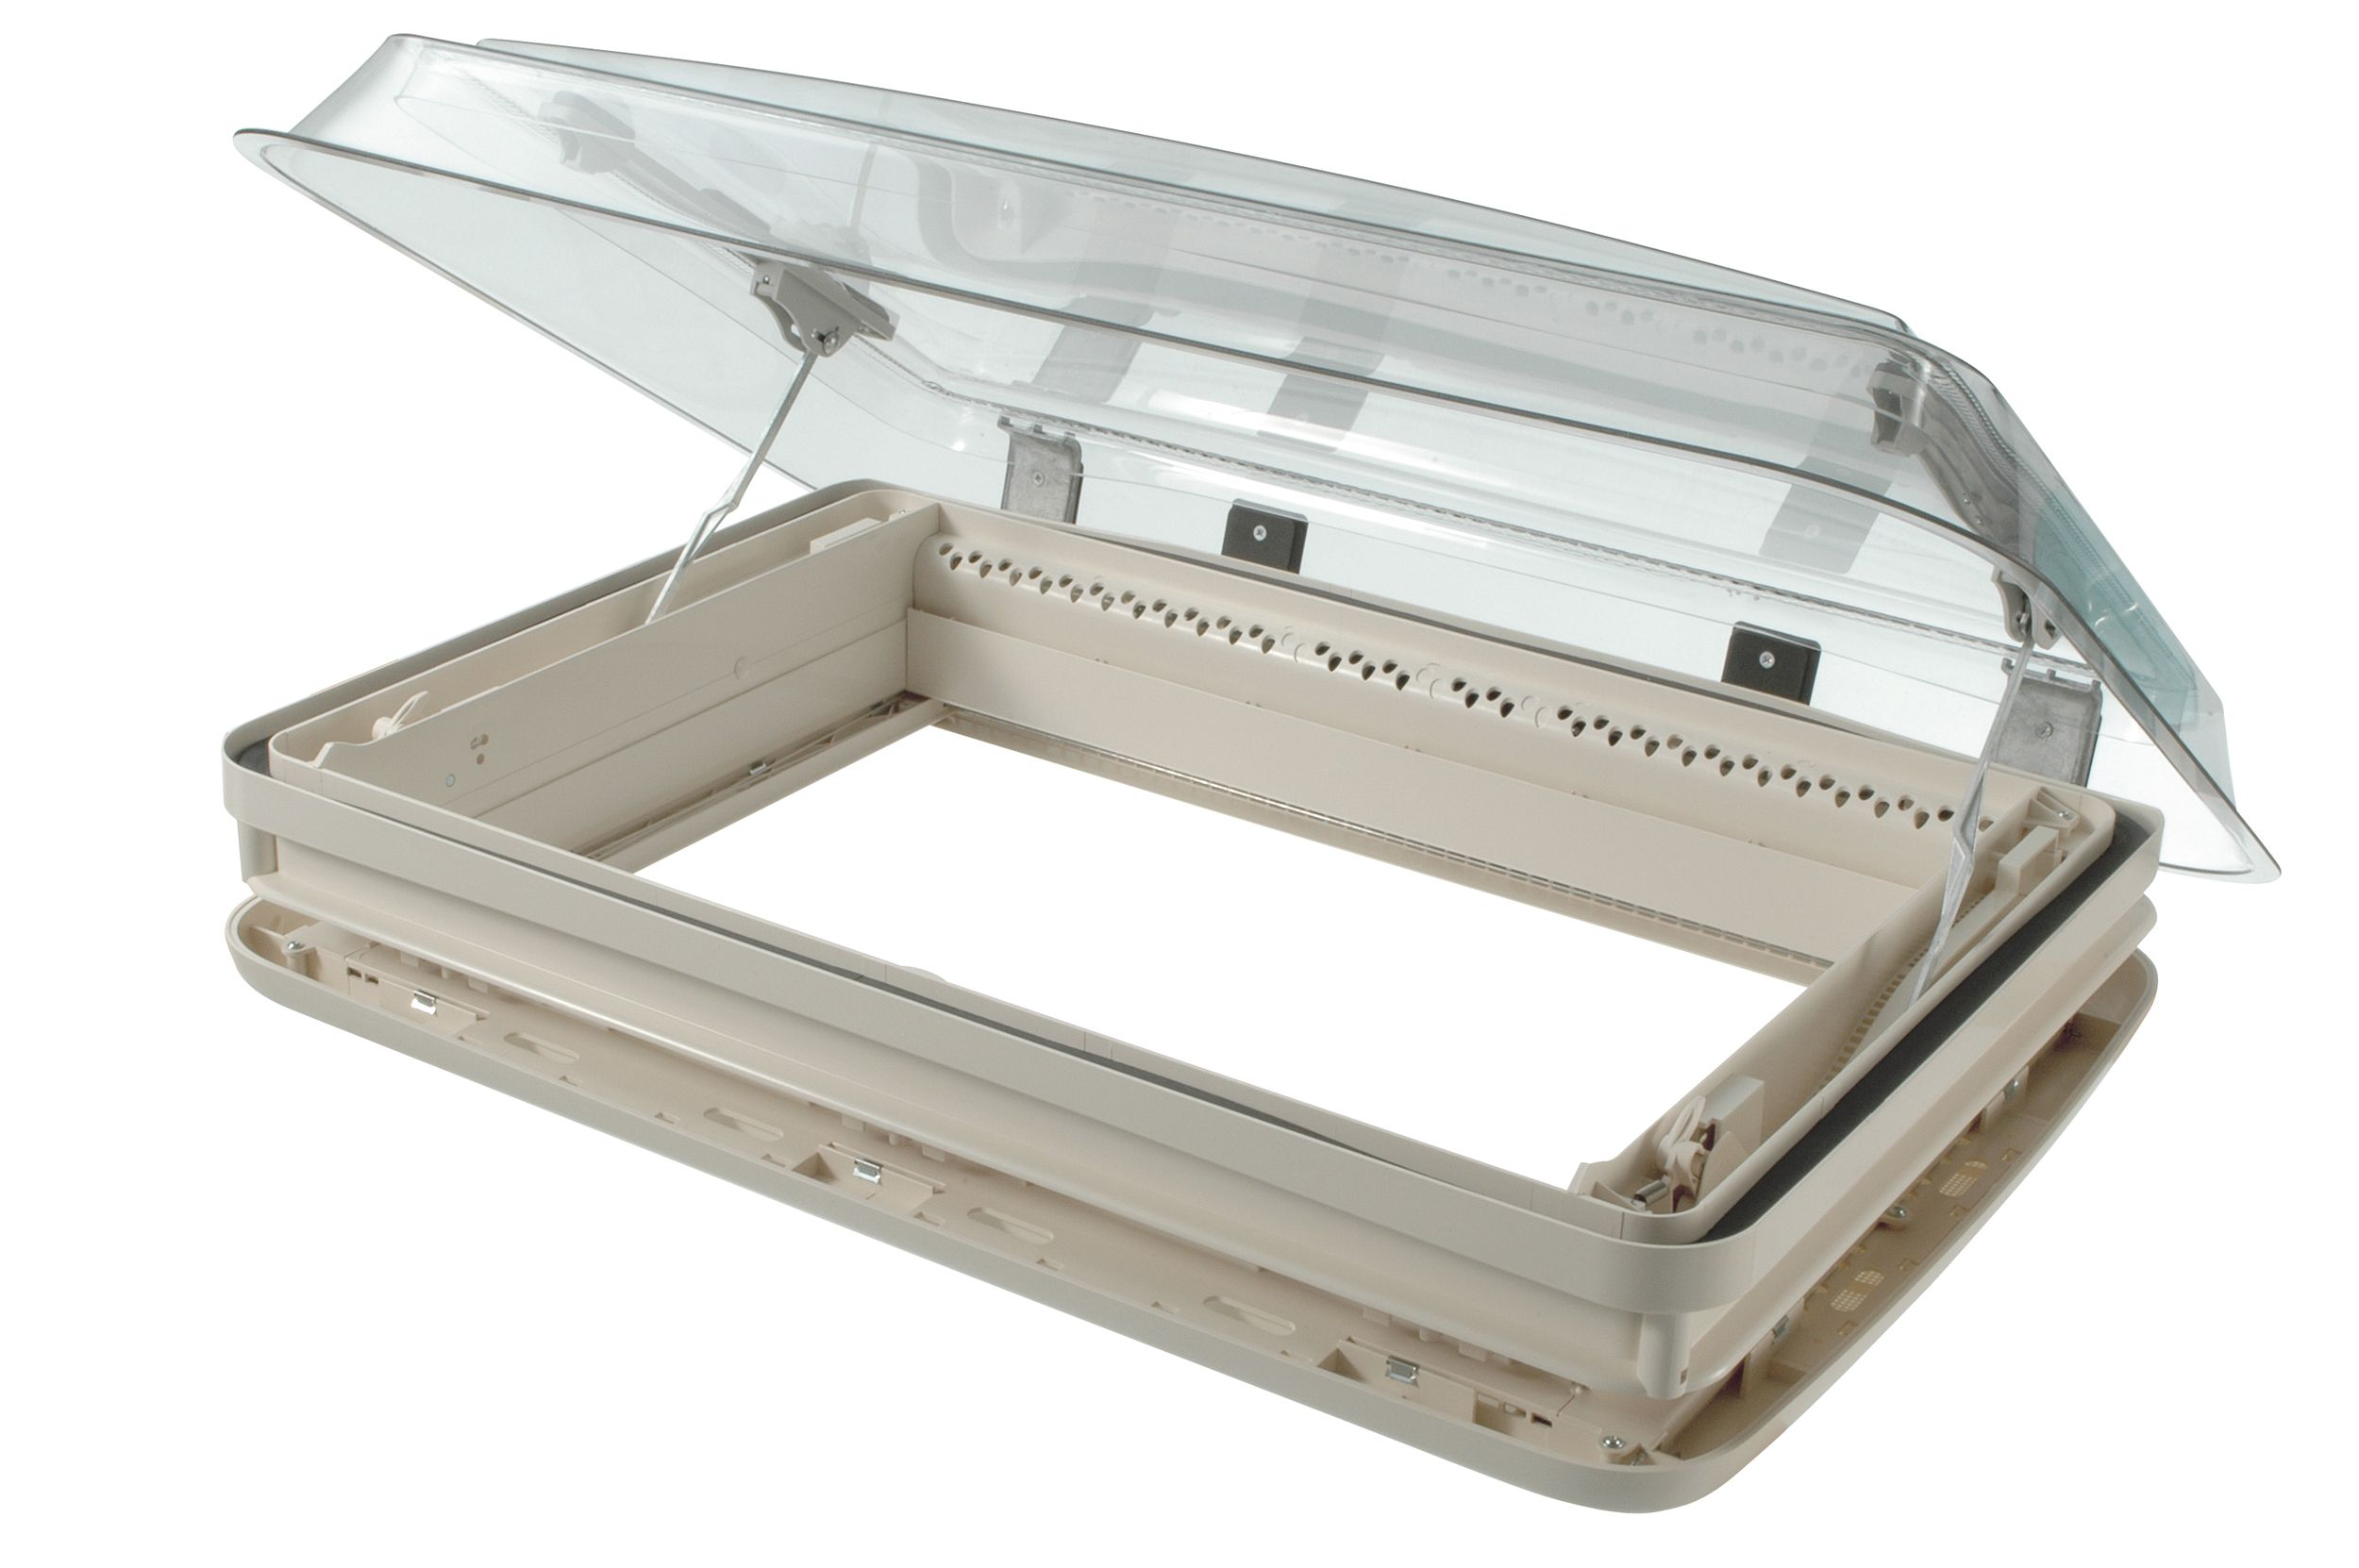 Dometic Seitz Midi Heki Electric Rooflight Without Forced Ventilation #5E4D38